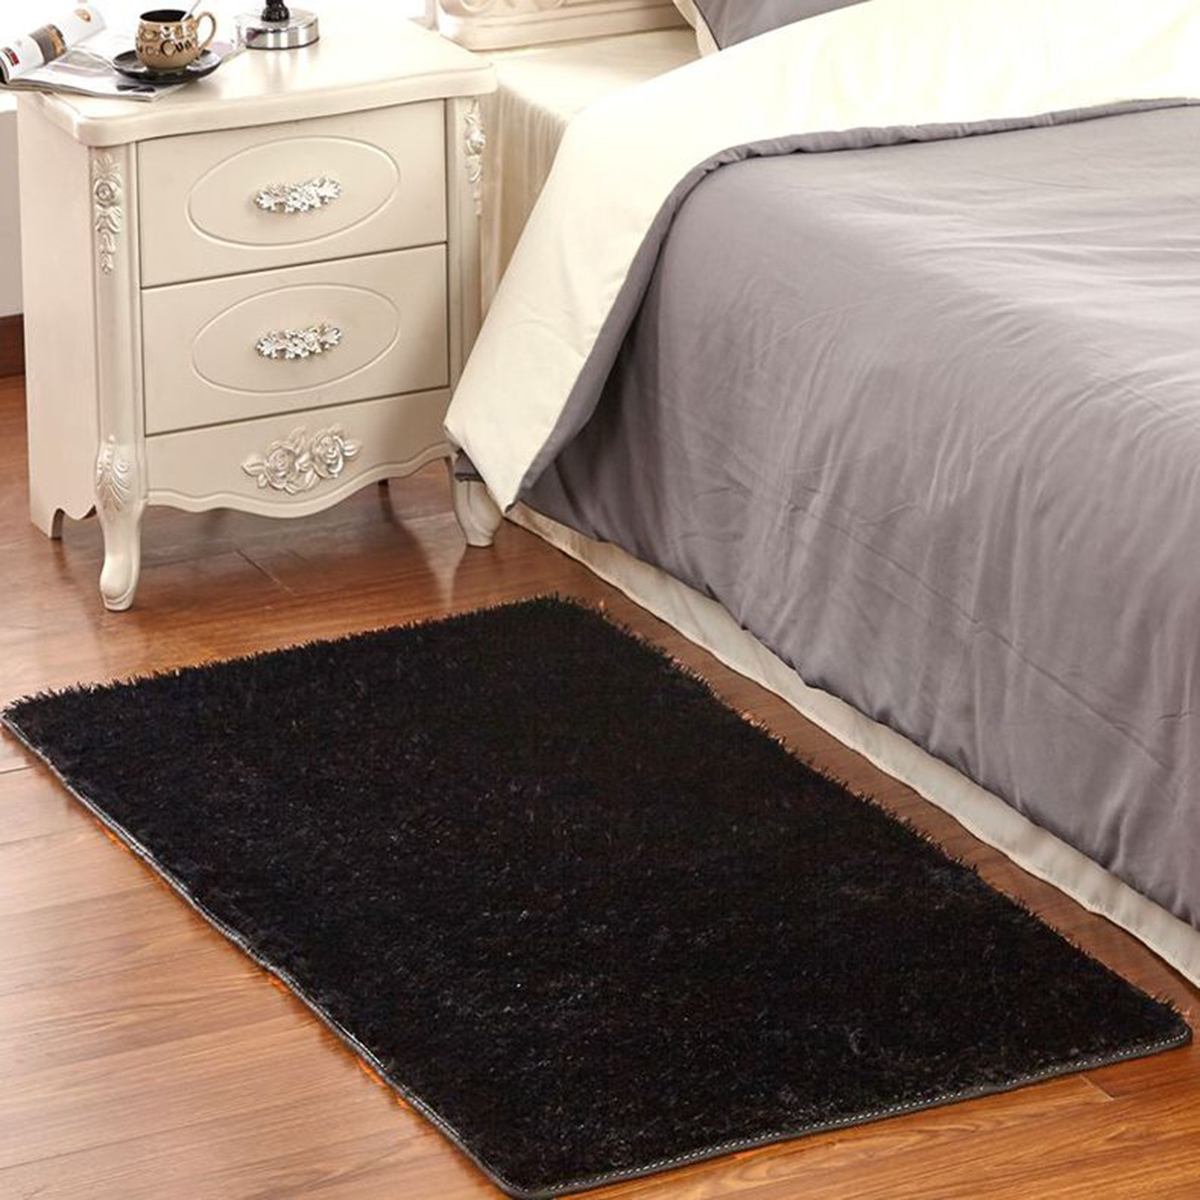 non slip kitchen rugs portable island with granite top 6090cm carpet living room long wool bathroom mat